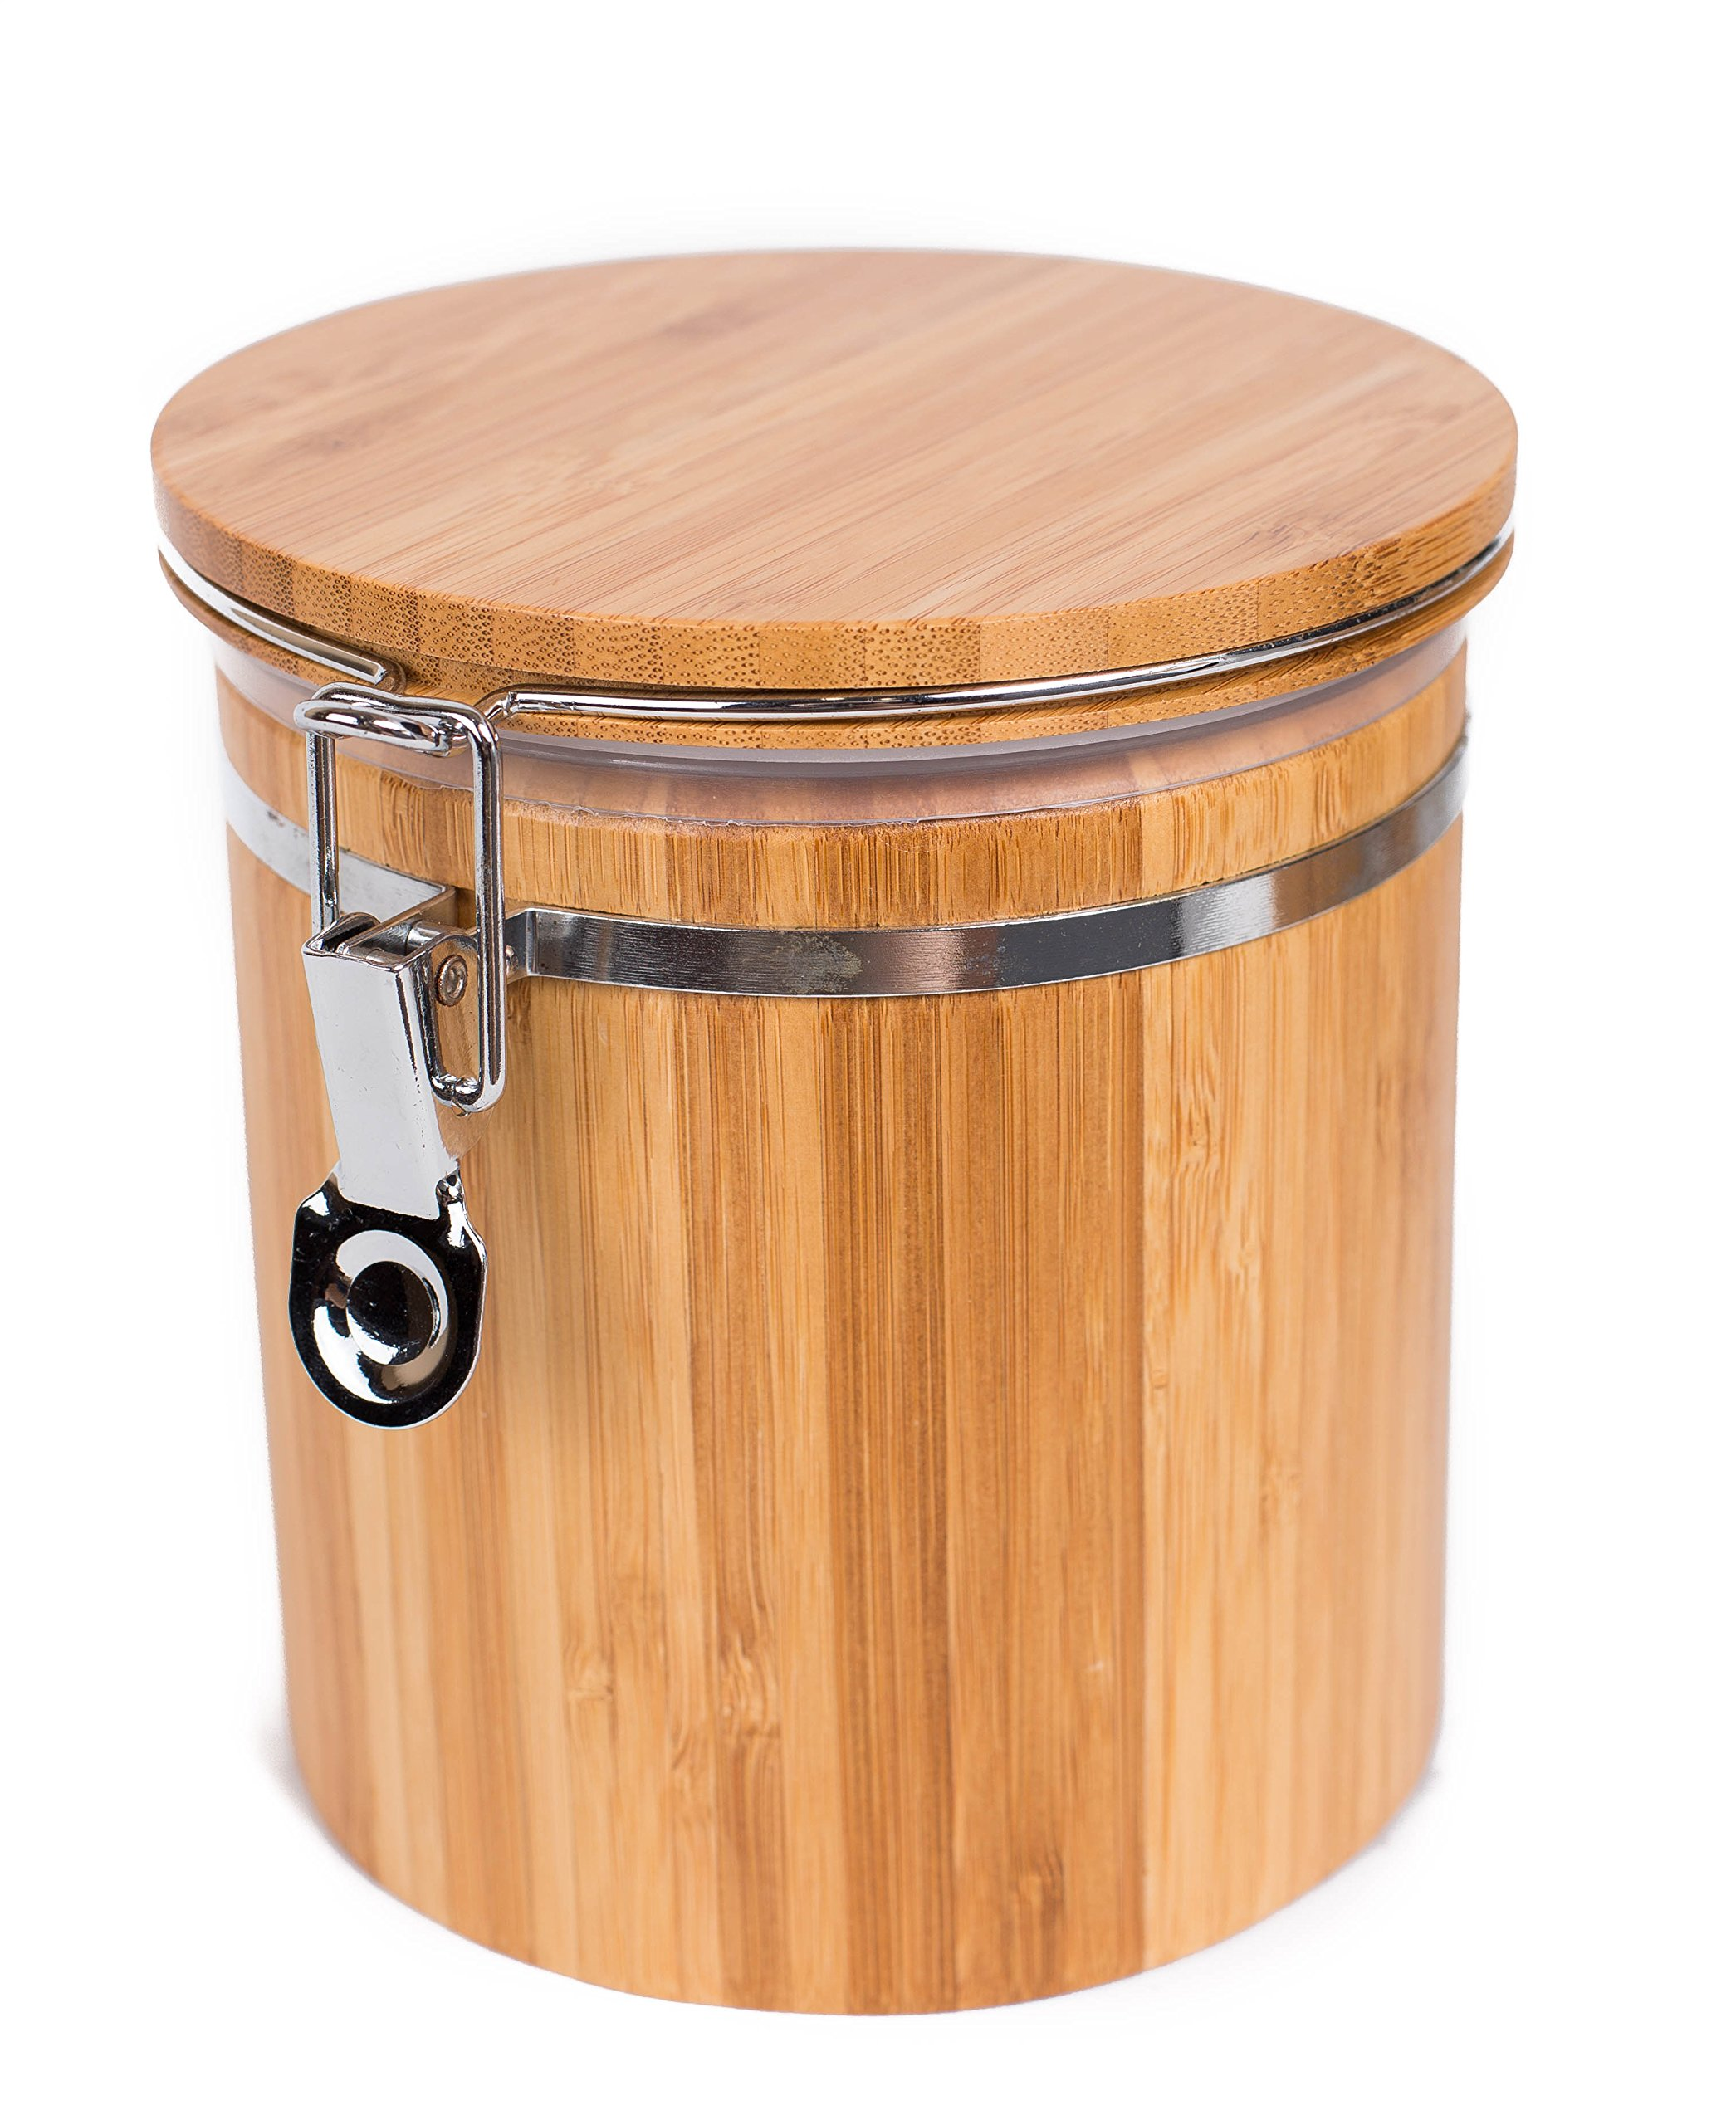 BirdRock Home Bamboo Food Storage Canister with Lid   Medium